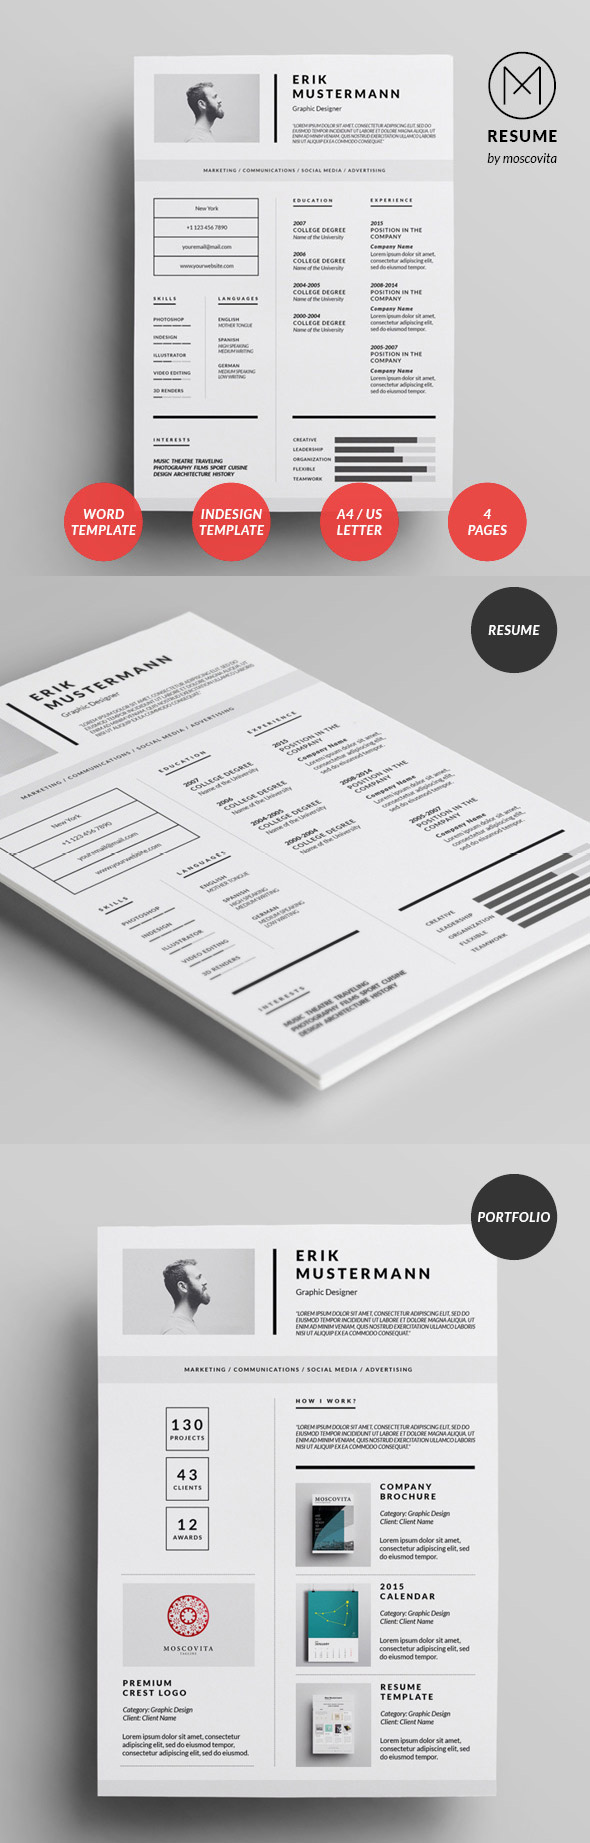 best resume templates for design graphic junction modern template moo icons human Resume Best Modern Resume Template